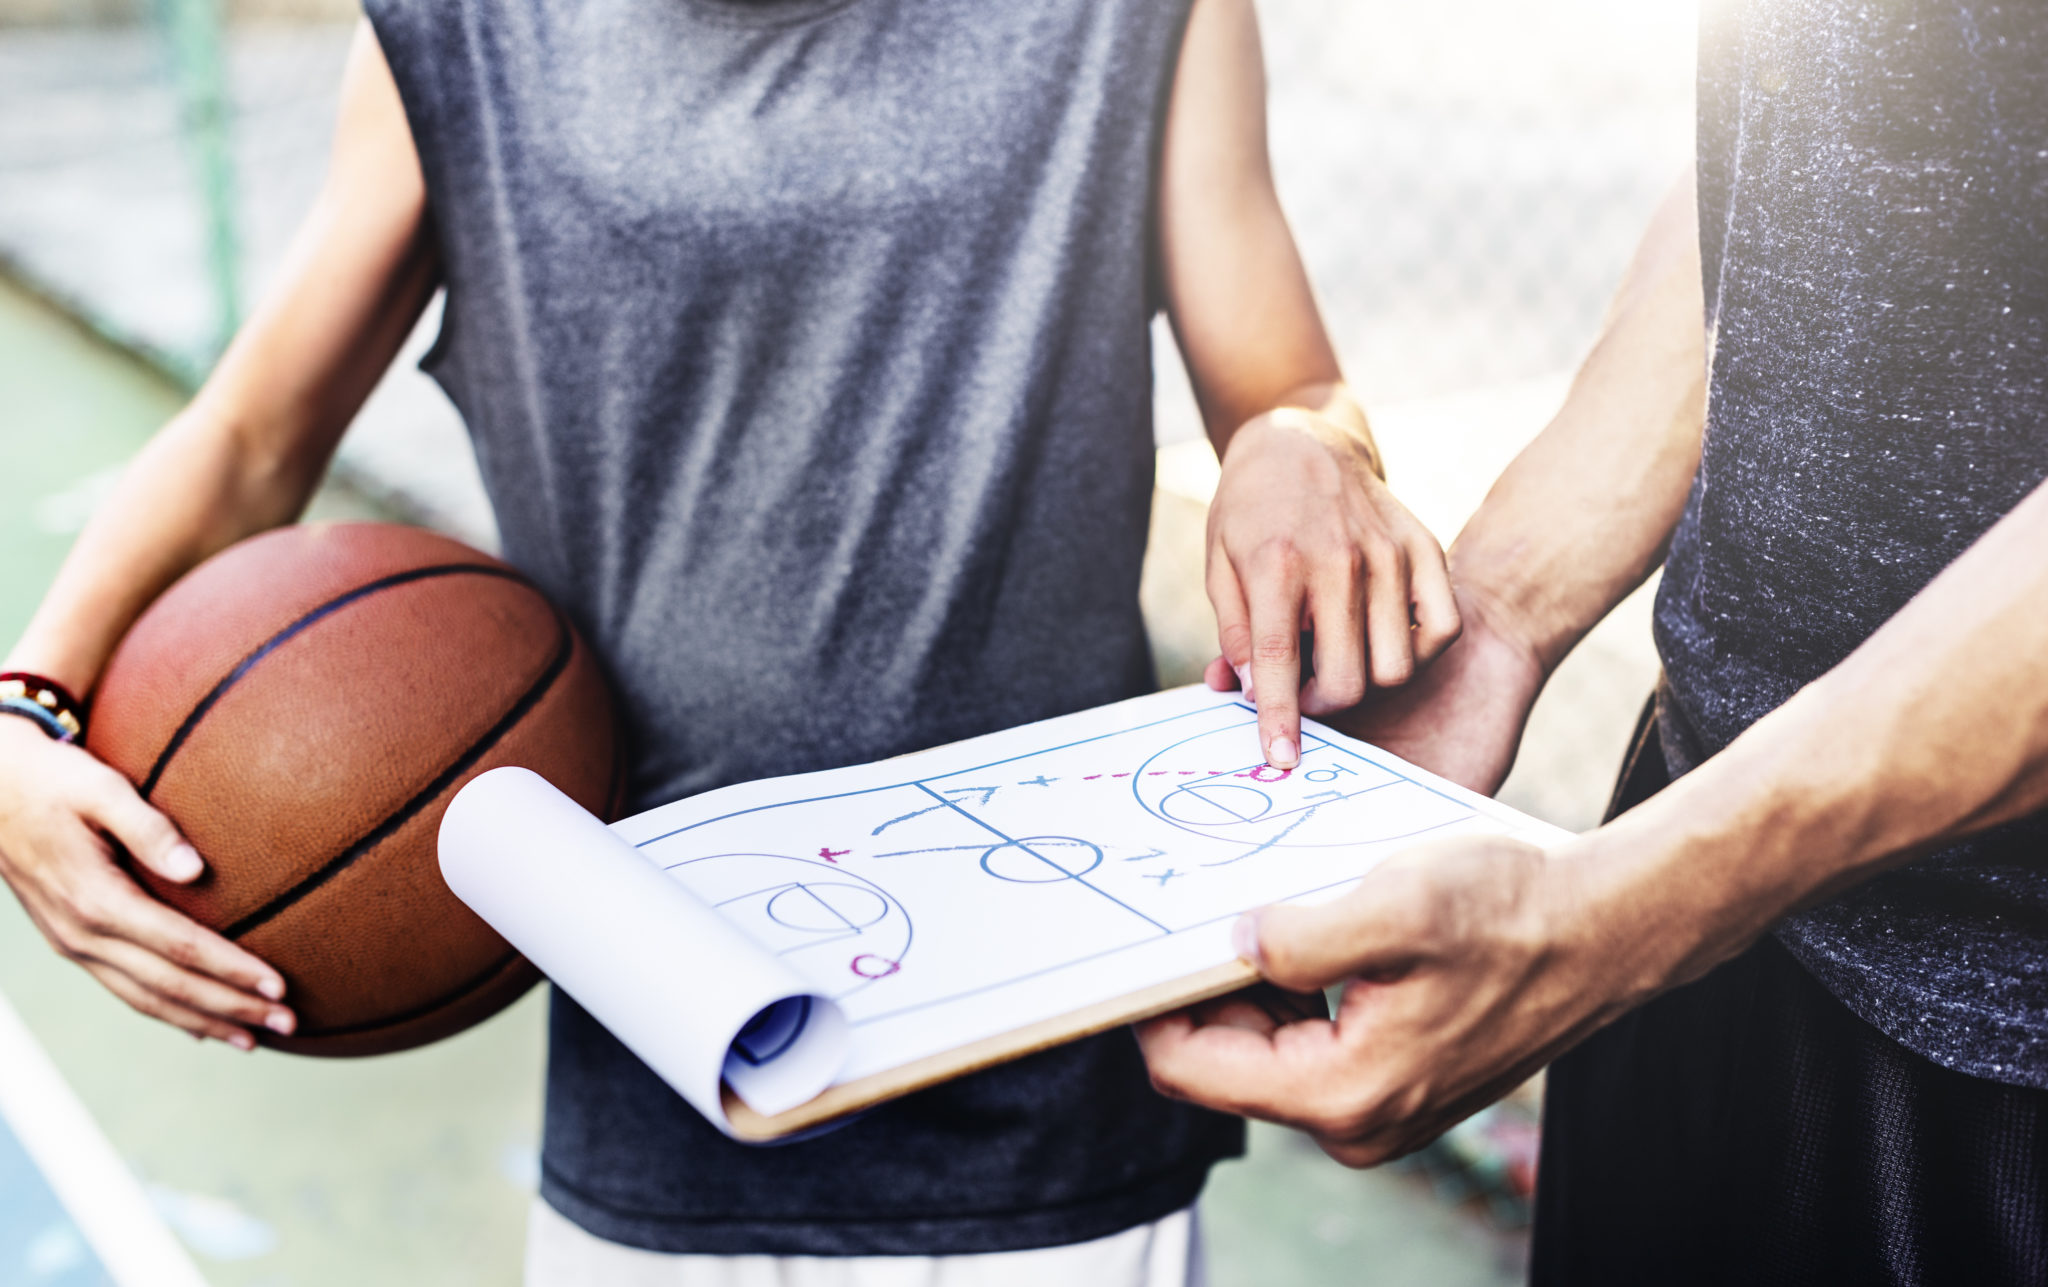 To Win in Life, You Need to Build Your Game Plan